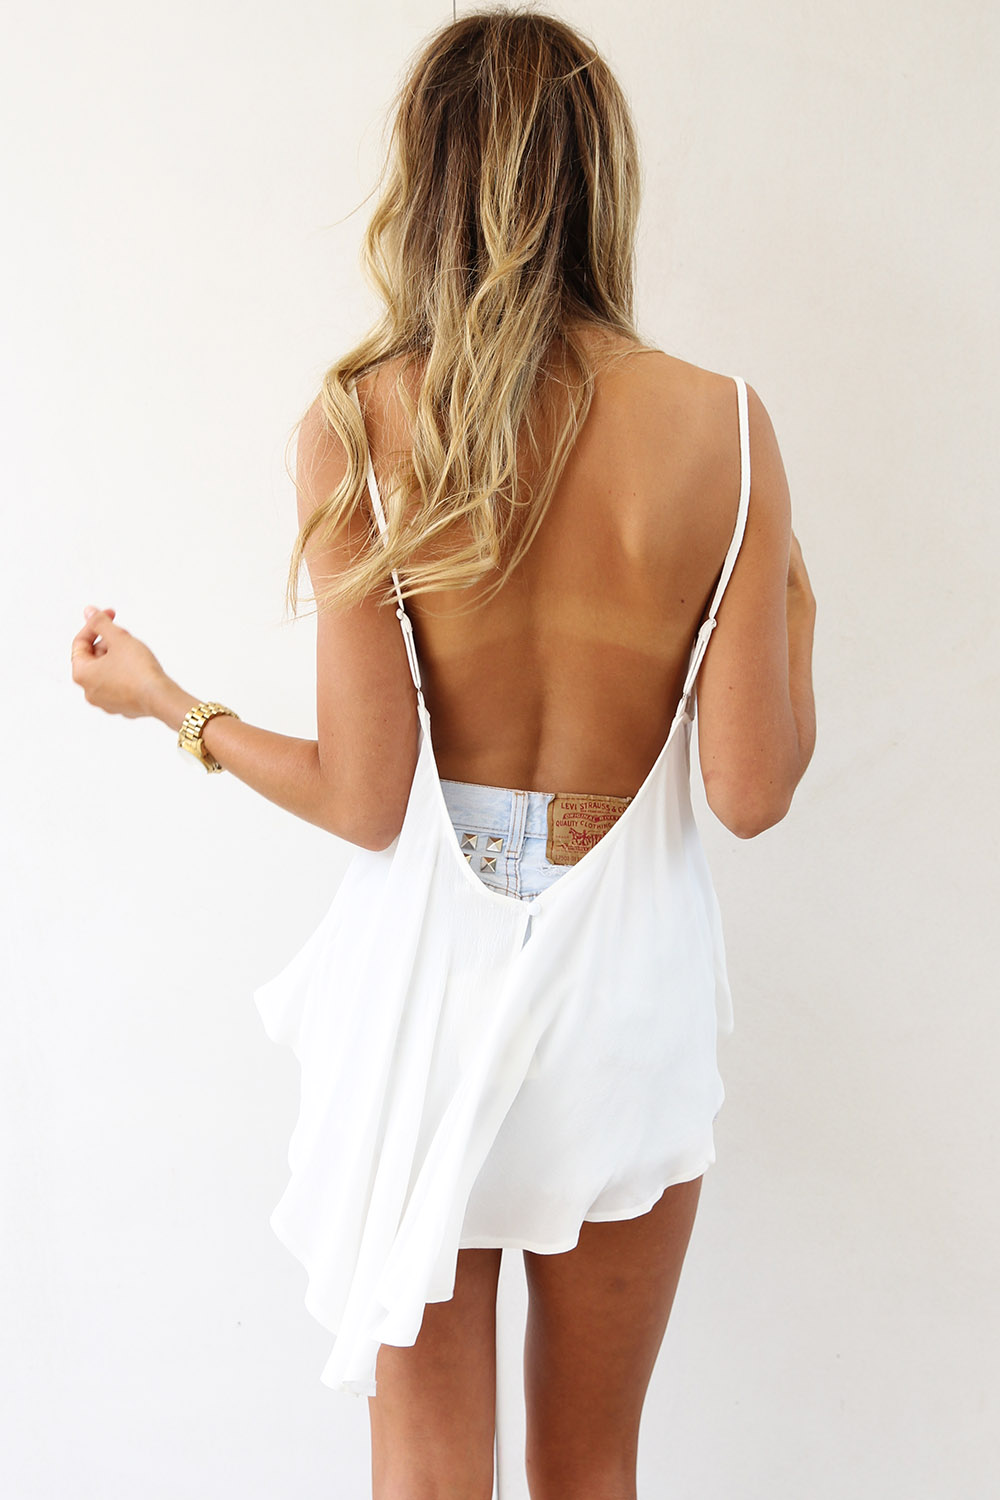 White Sleeveless Top - White Sleeveless Top with Open | UsTrendy